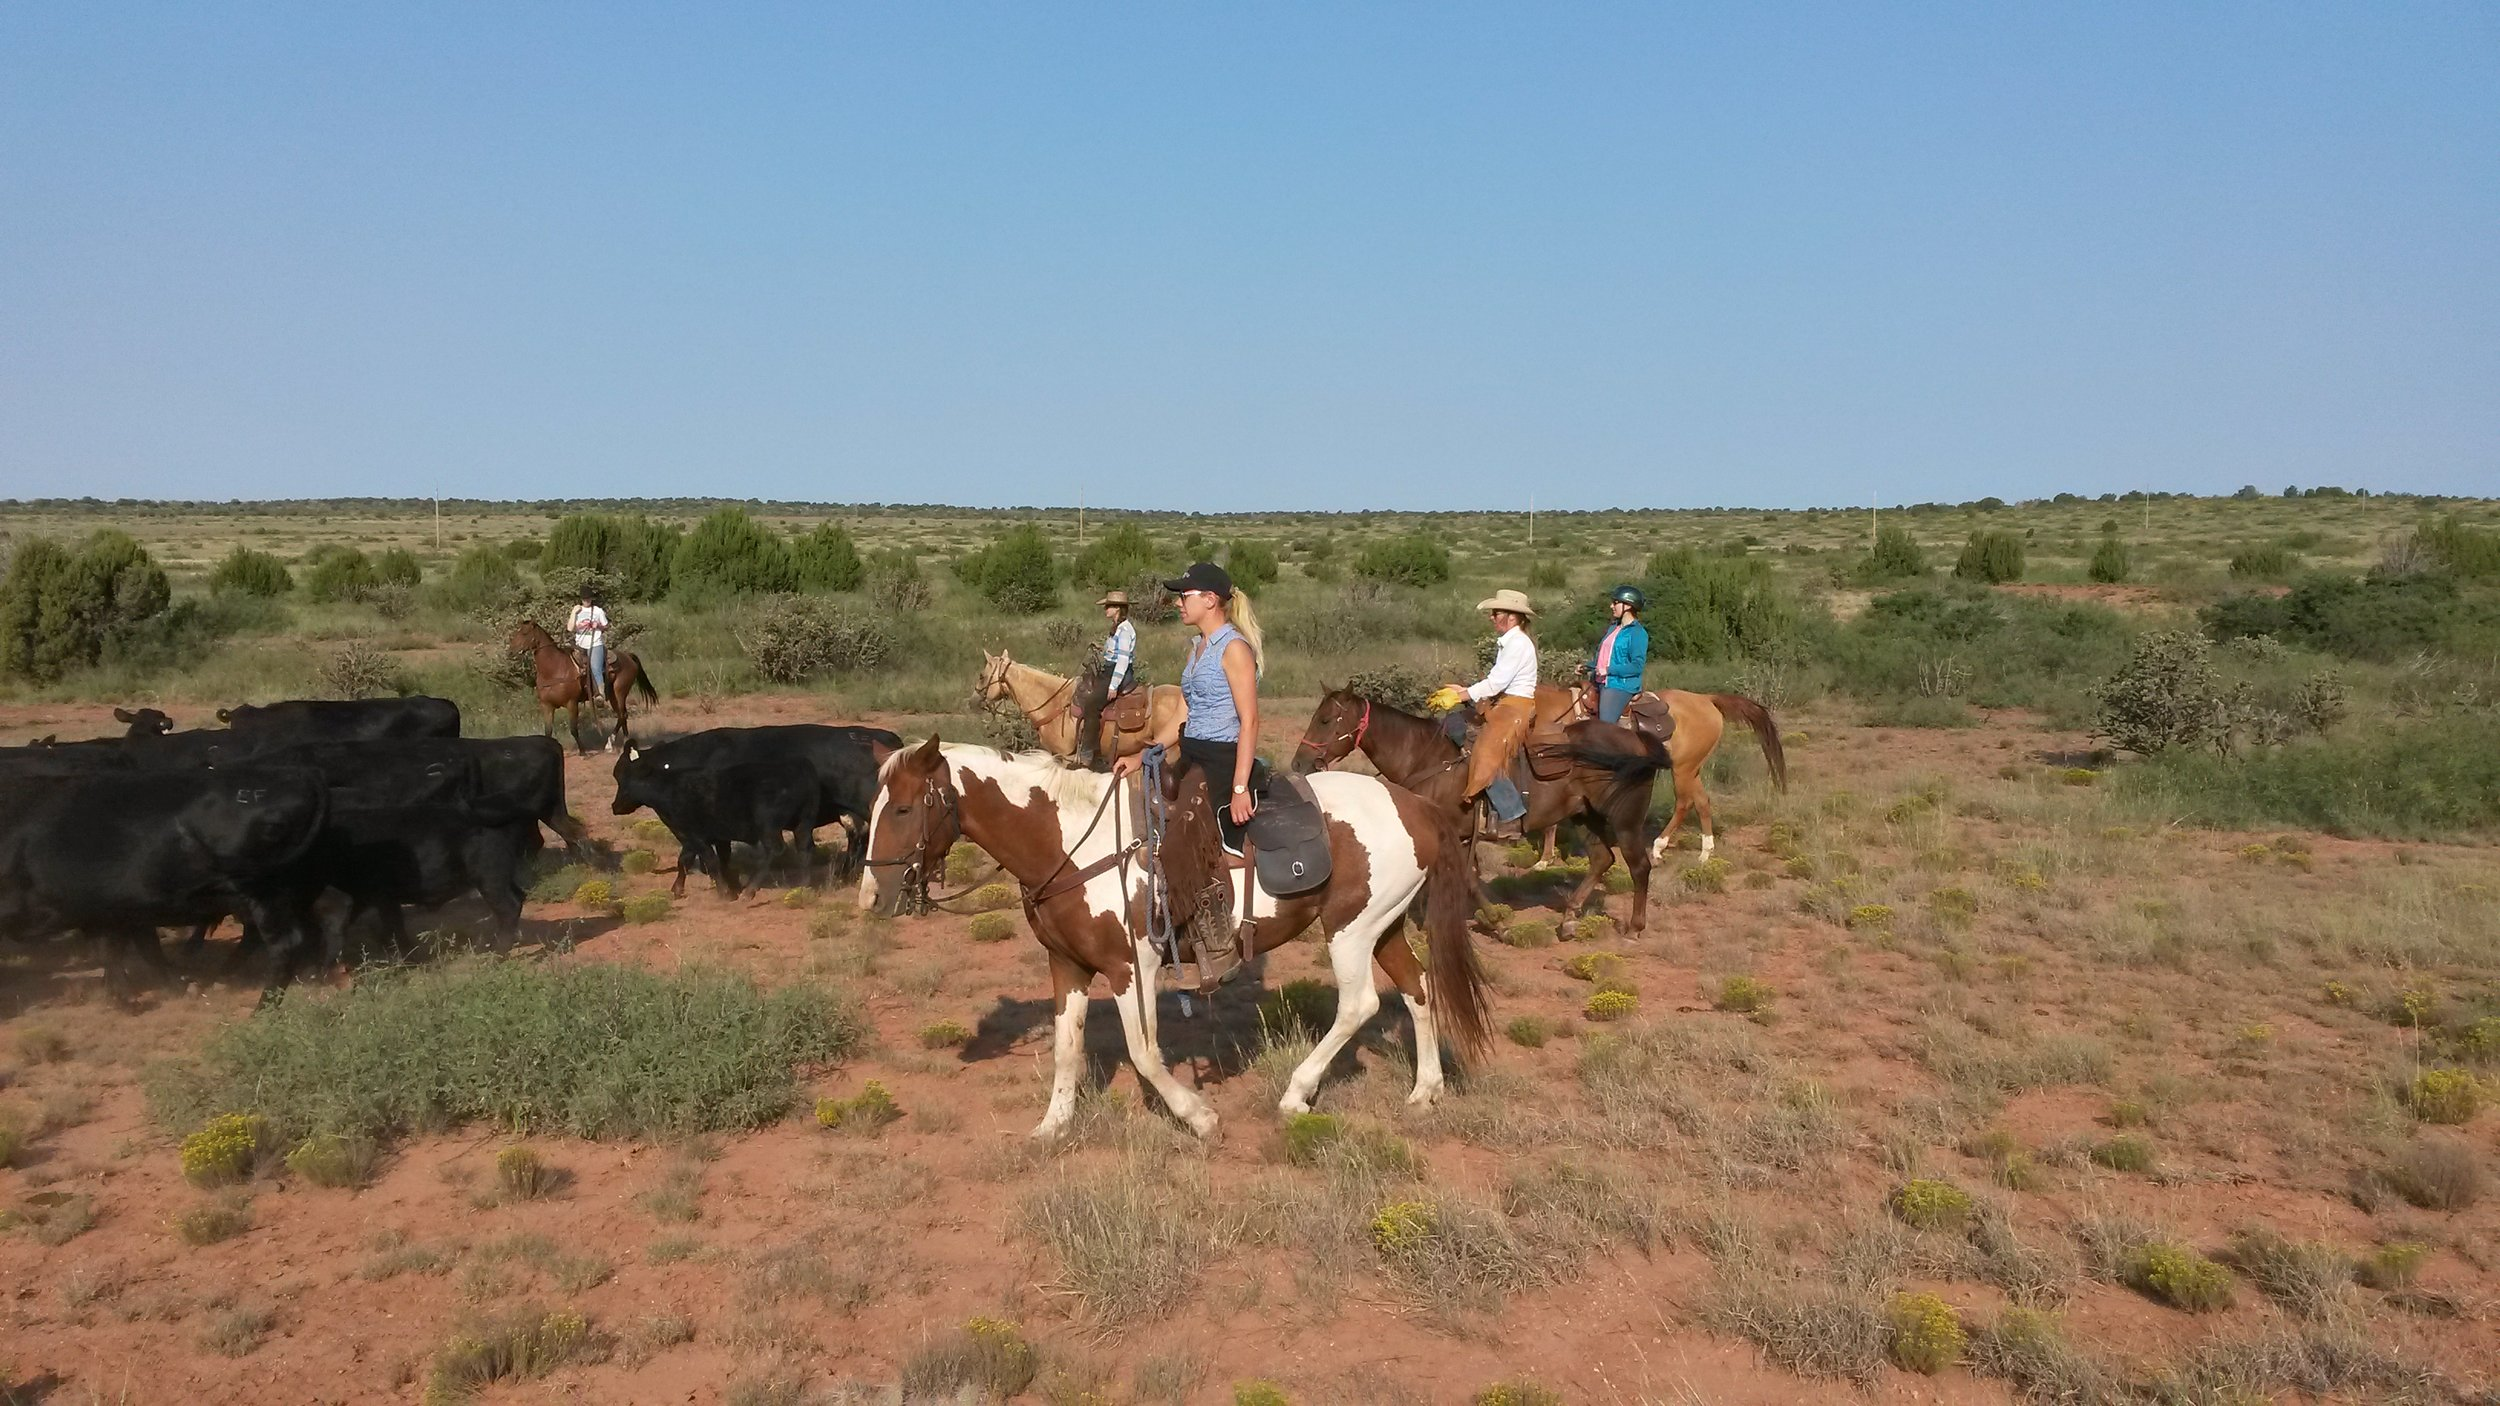 Our team pushing the cattle (front to back): Christina on Dolly, Andy on Snickers, Katrin on Whiskey, Pia on Johnny...  Unser Team beim Viehtrieb (von vorne nach hinten):Christina auf Dolly, Andy auf Snickers, Katrin auf Whiskey, Pia on Johnny...